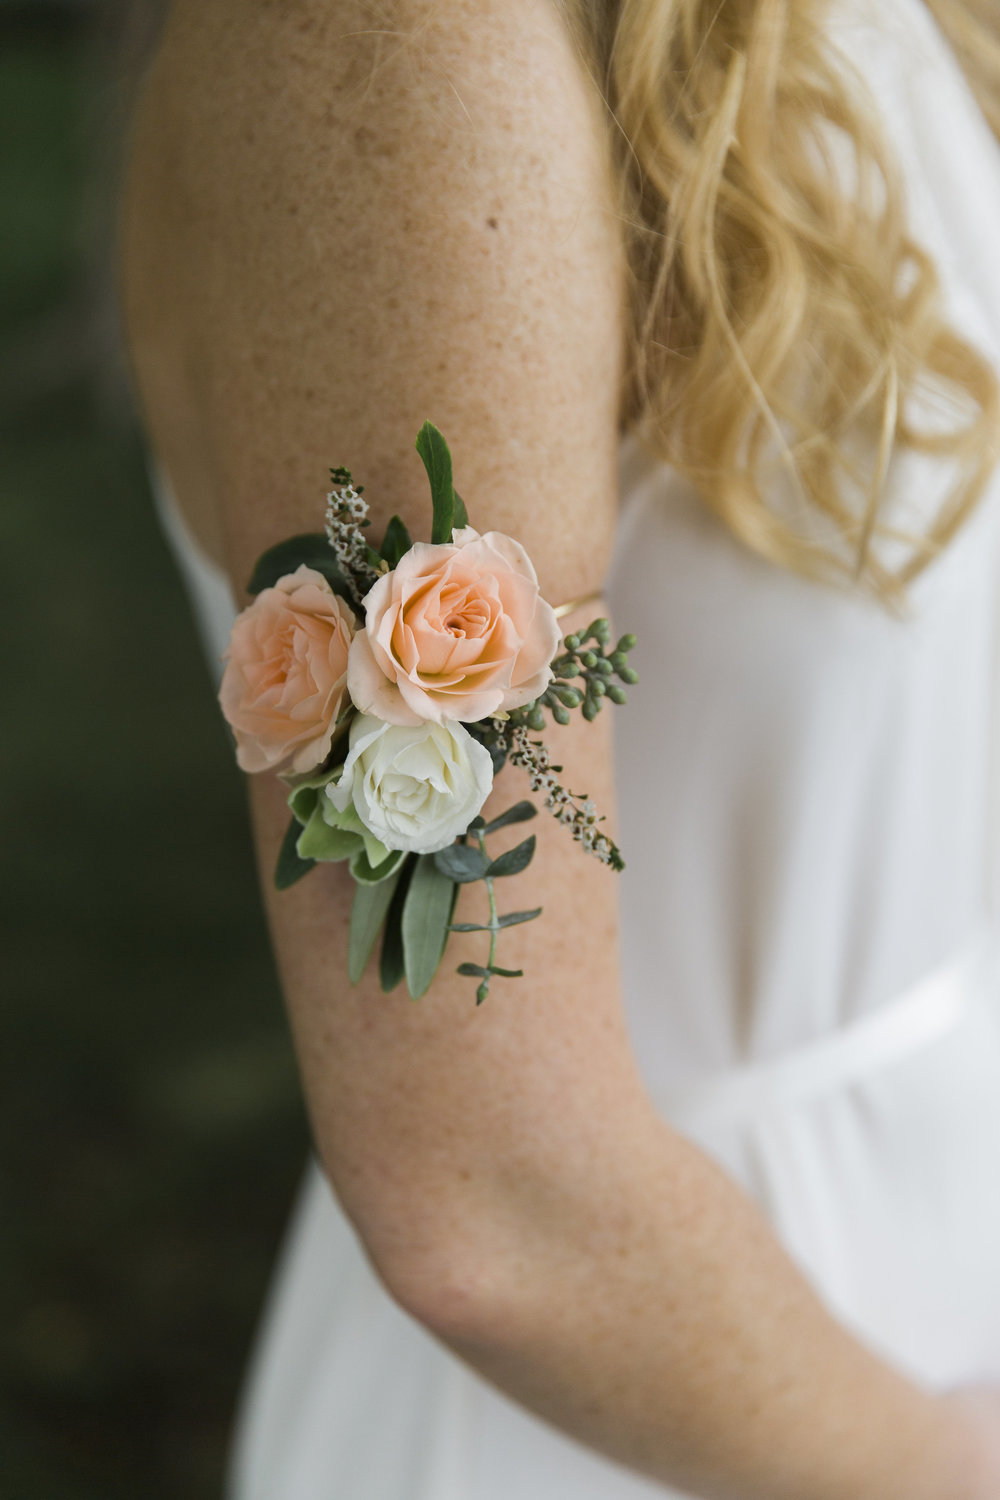 Flowers by Lace and Lilies, arm band flowers, arm flowers, wearable flowers, peach flowers, greenery, peach and white wedding, martha stewart wedding, colorado wedding, denver wedding